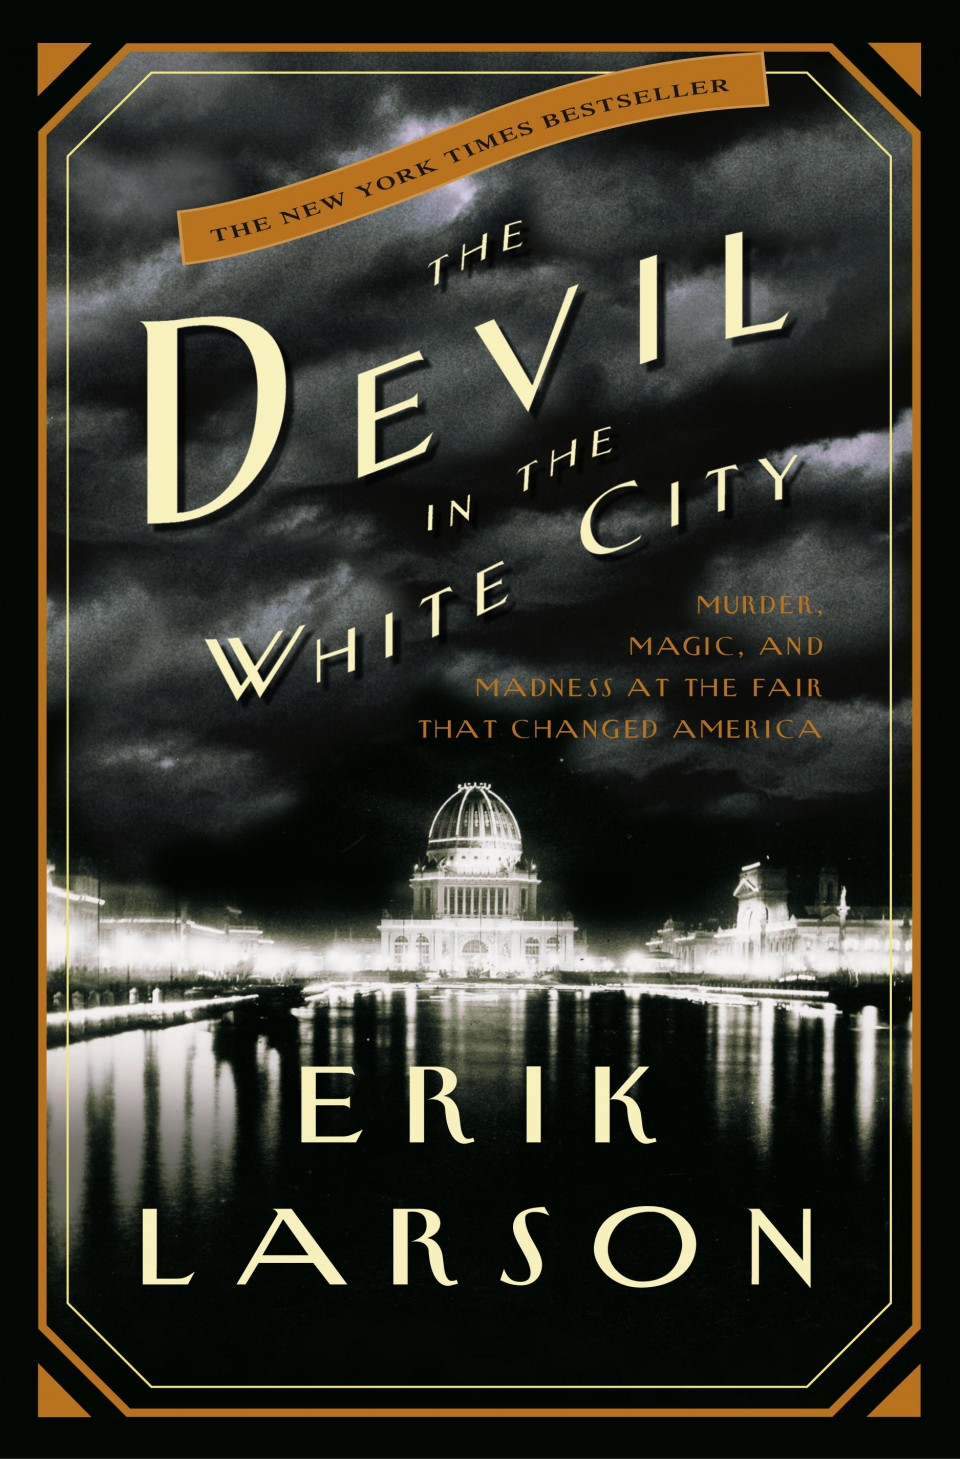 The-Devil-in-the-White-City-by-Erik-Larson-Book-Cover-960x1459